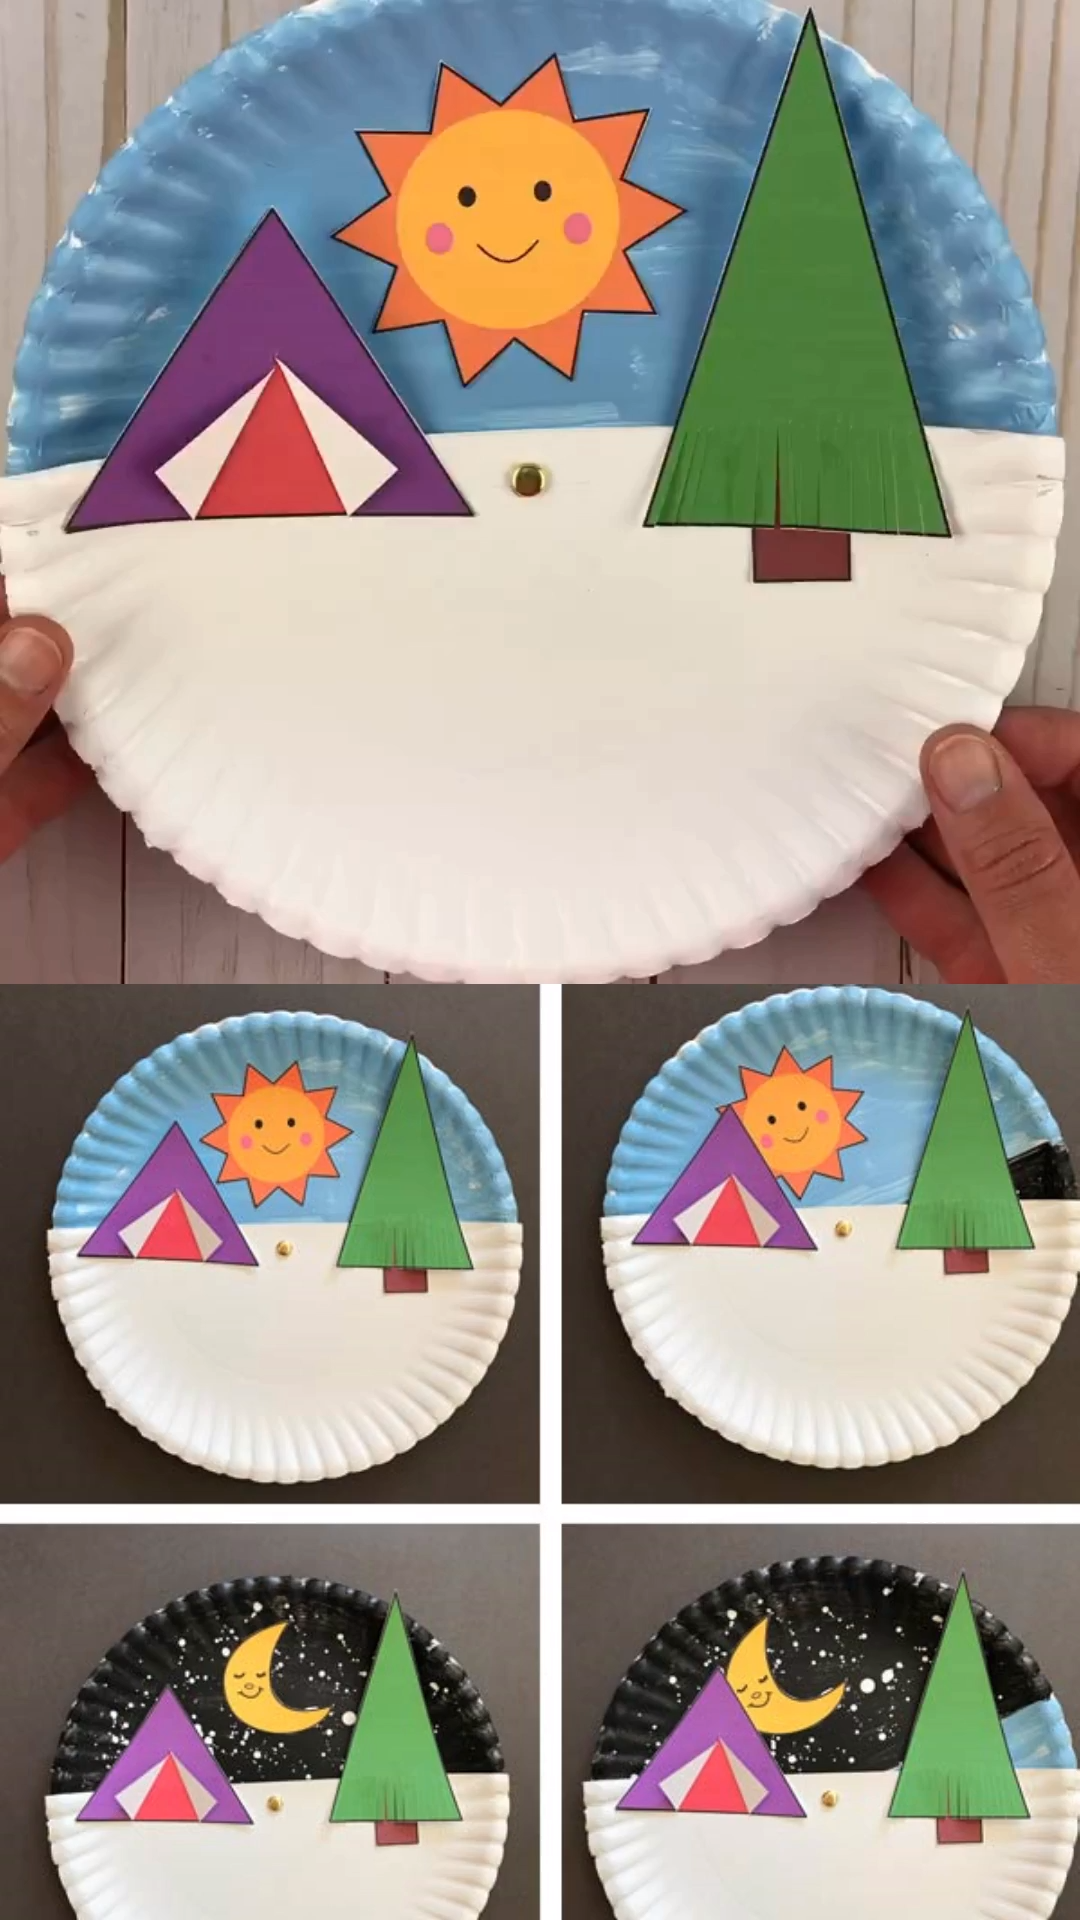 Paper plate camping craft kids #craft